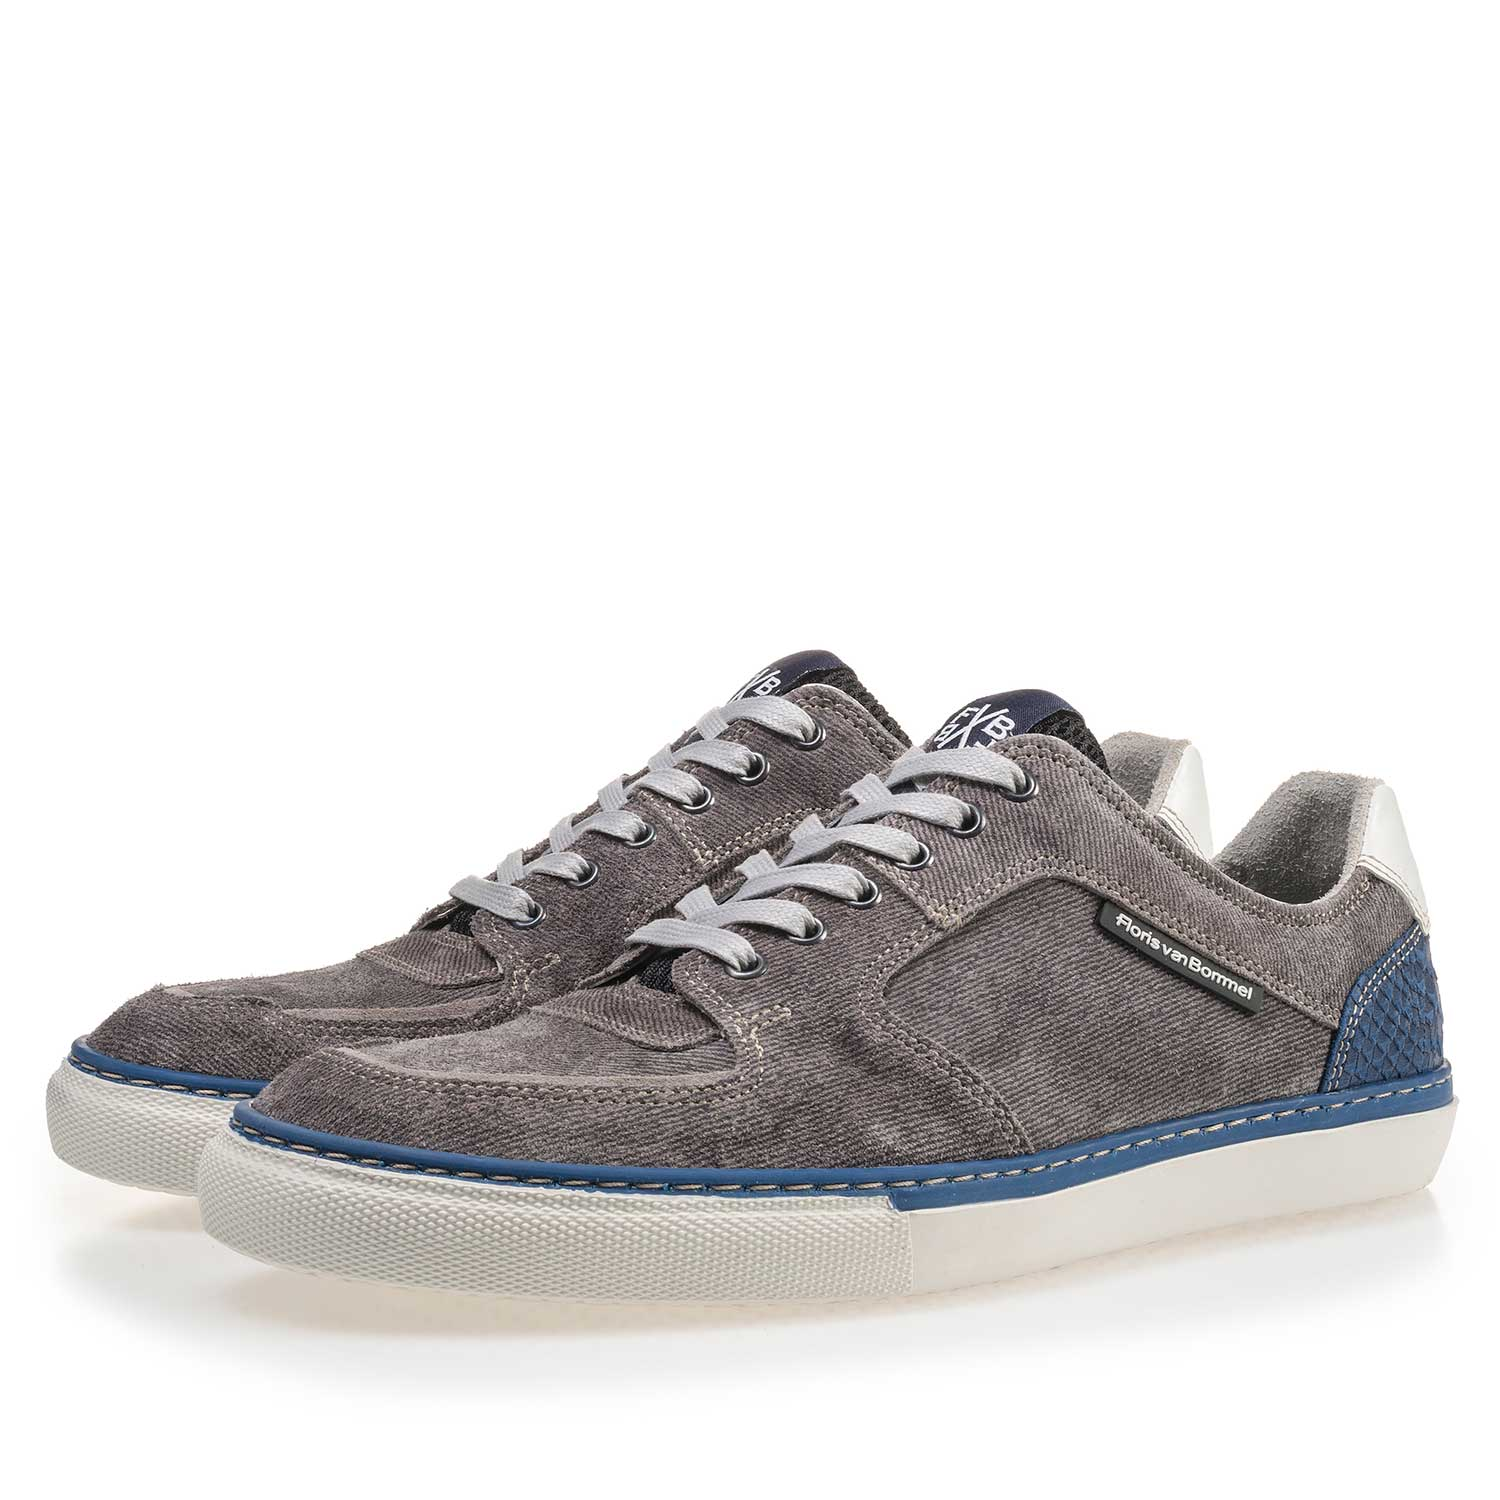 16252/03 - Grey patterned suede leather sneaker